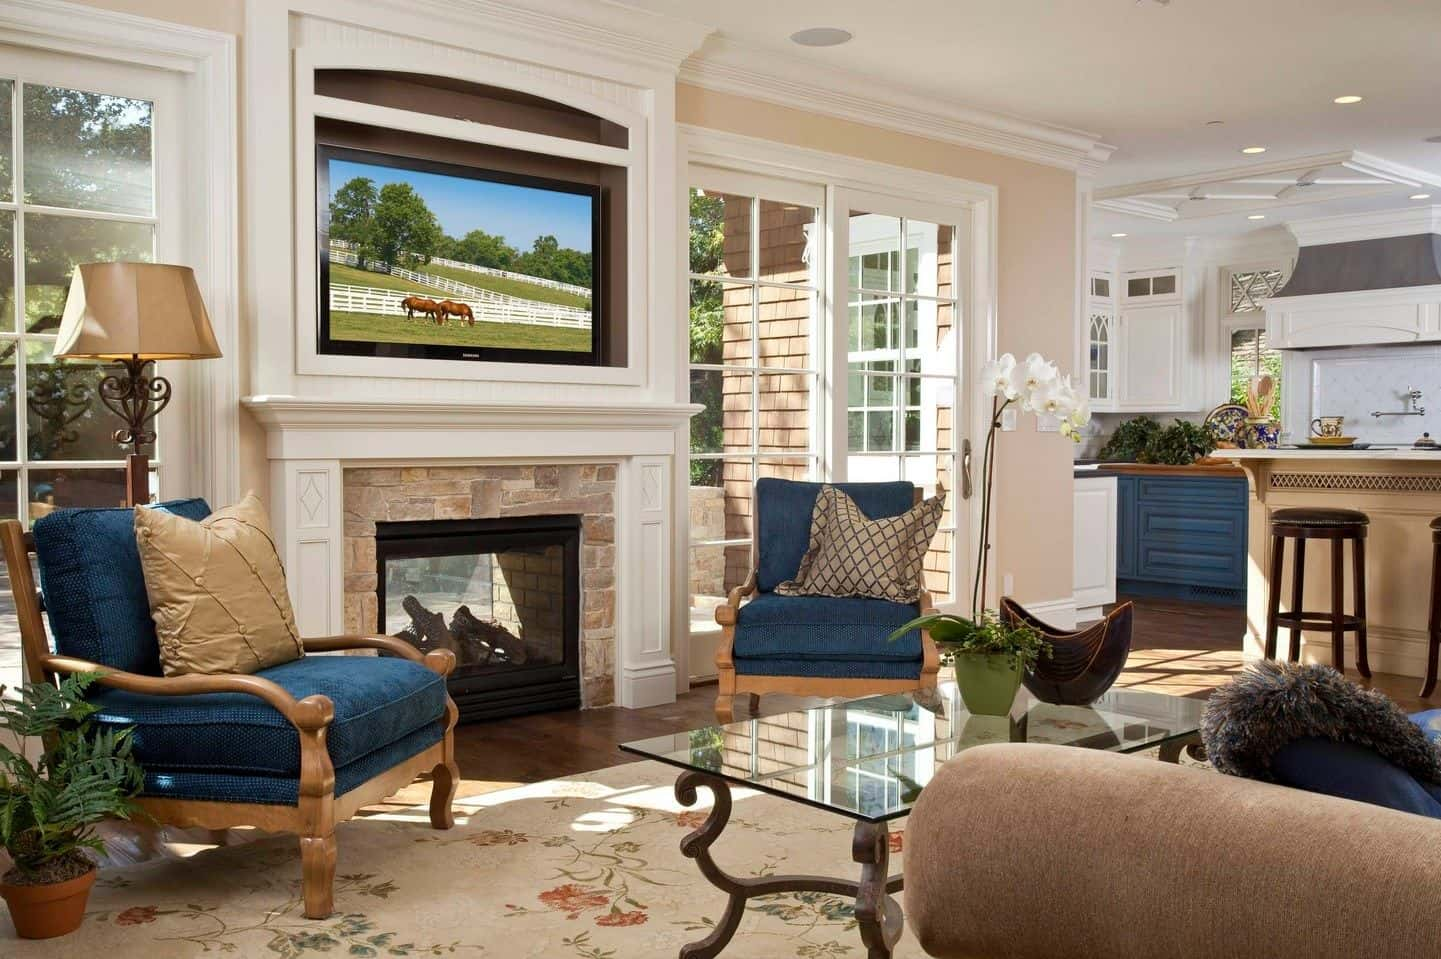 Gorgeous living room accented with blue armchairs that faces the glass top coffee table and sofa. It includes a television that hung above the fireplace with stone surround tiles.